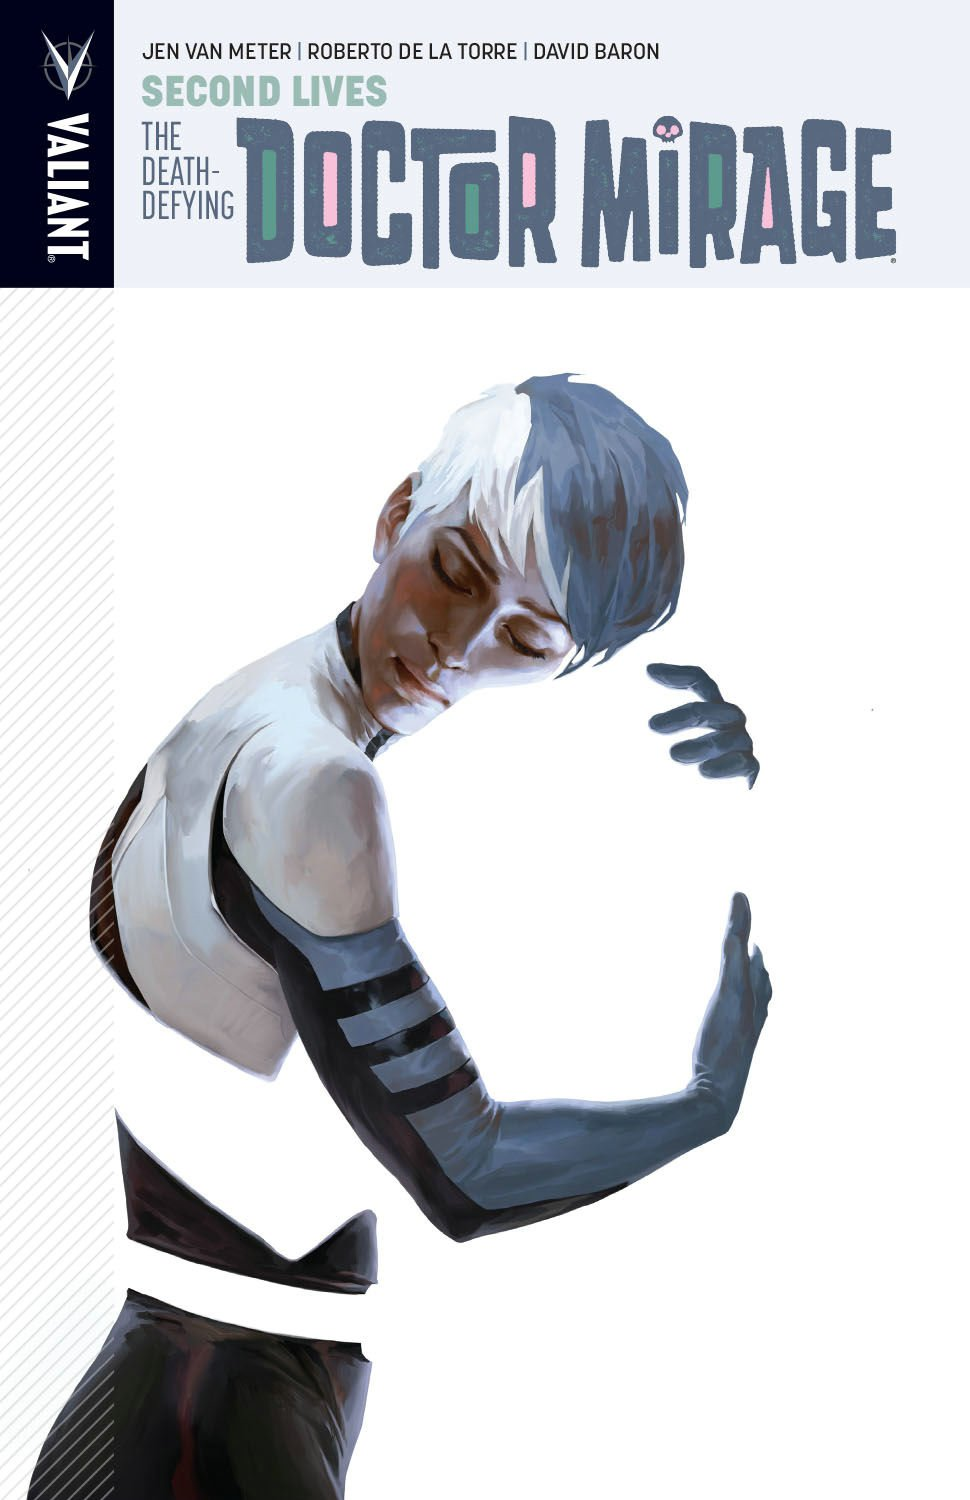 Read Online The Death-Defying Dr. Mirage Volume 2: Second Lives ebook